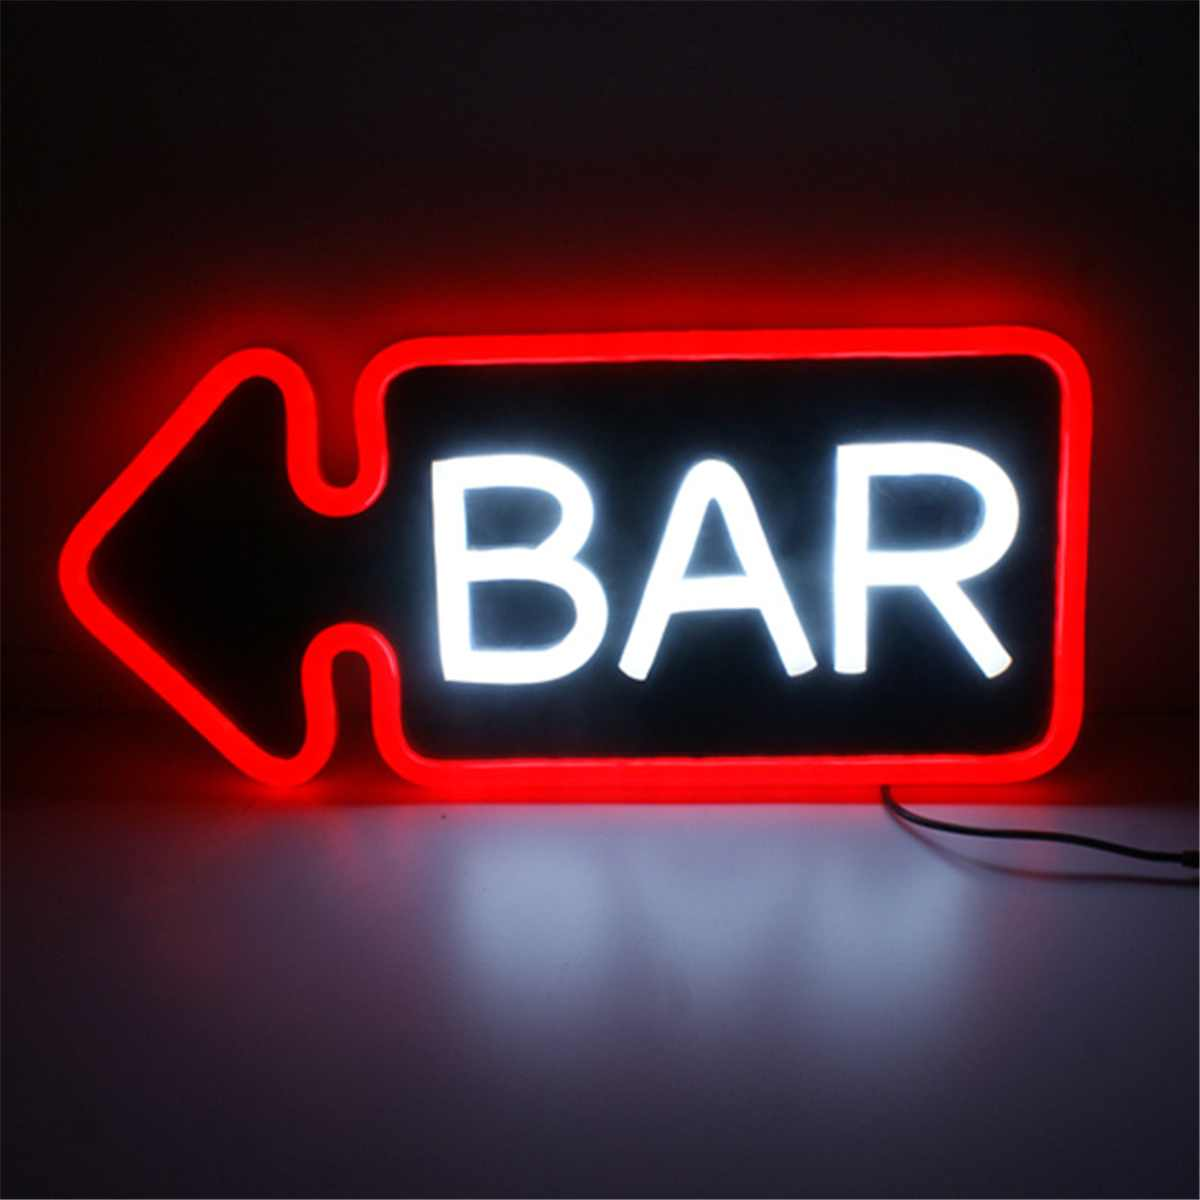 BAR Sign LED Neon Light PVC Bar Club Wall Light Lamp Decoration Lighting Neon Bulbs Board Handmade Visual Artwork image